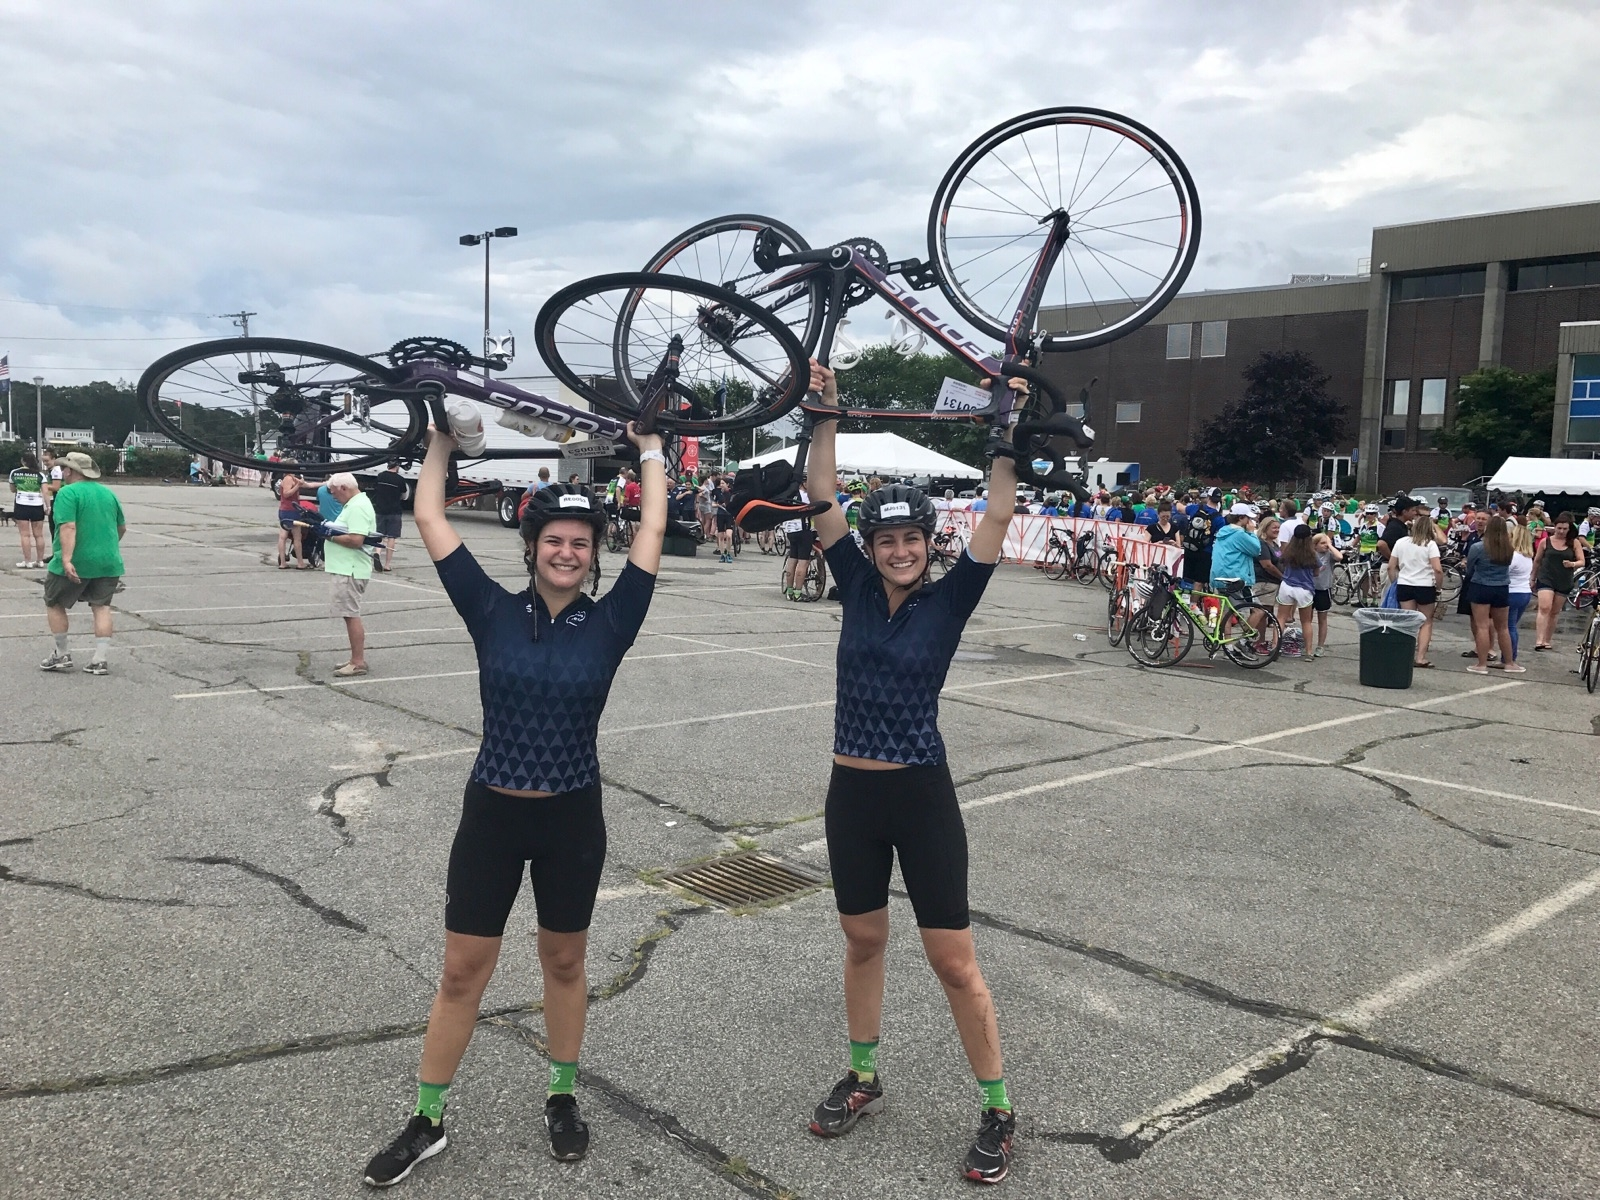 FableVision's Mikaela Johnson (right) and her friend and PMC riding teammate Rebecca Epstein (left).